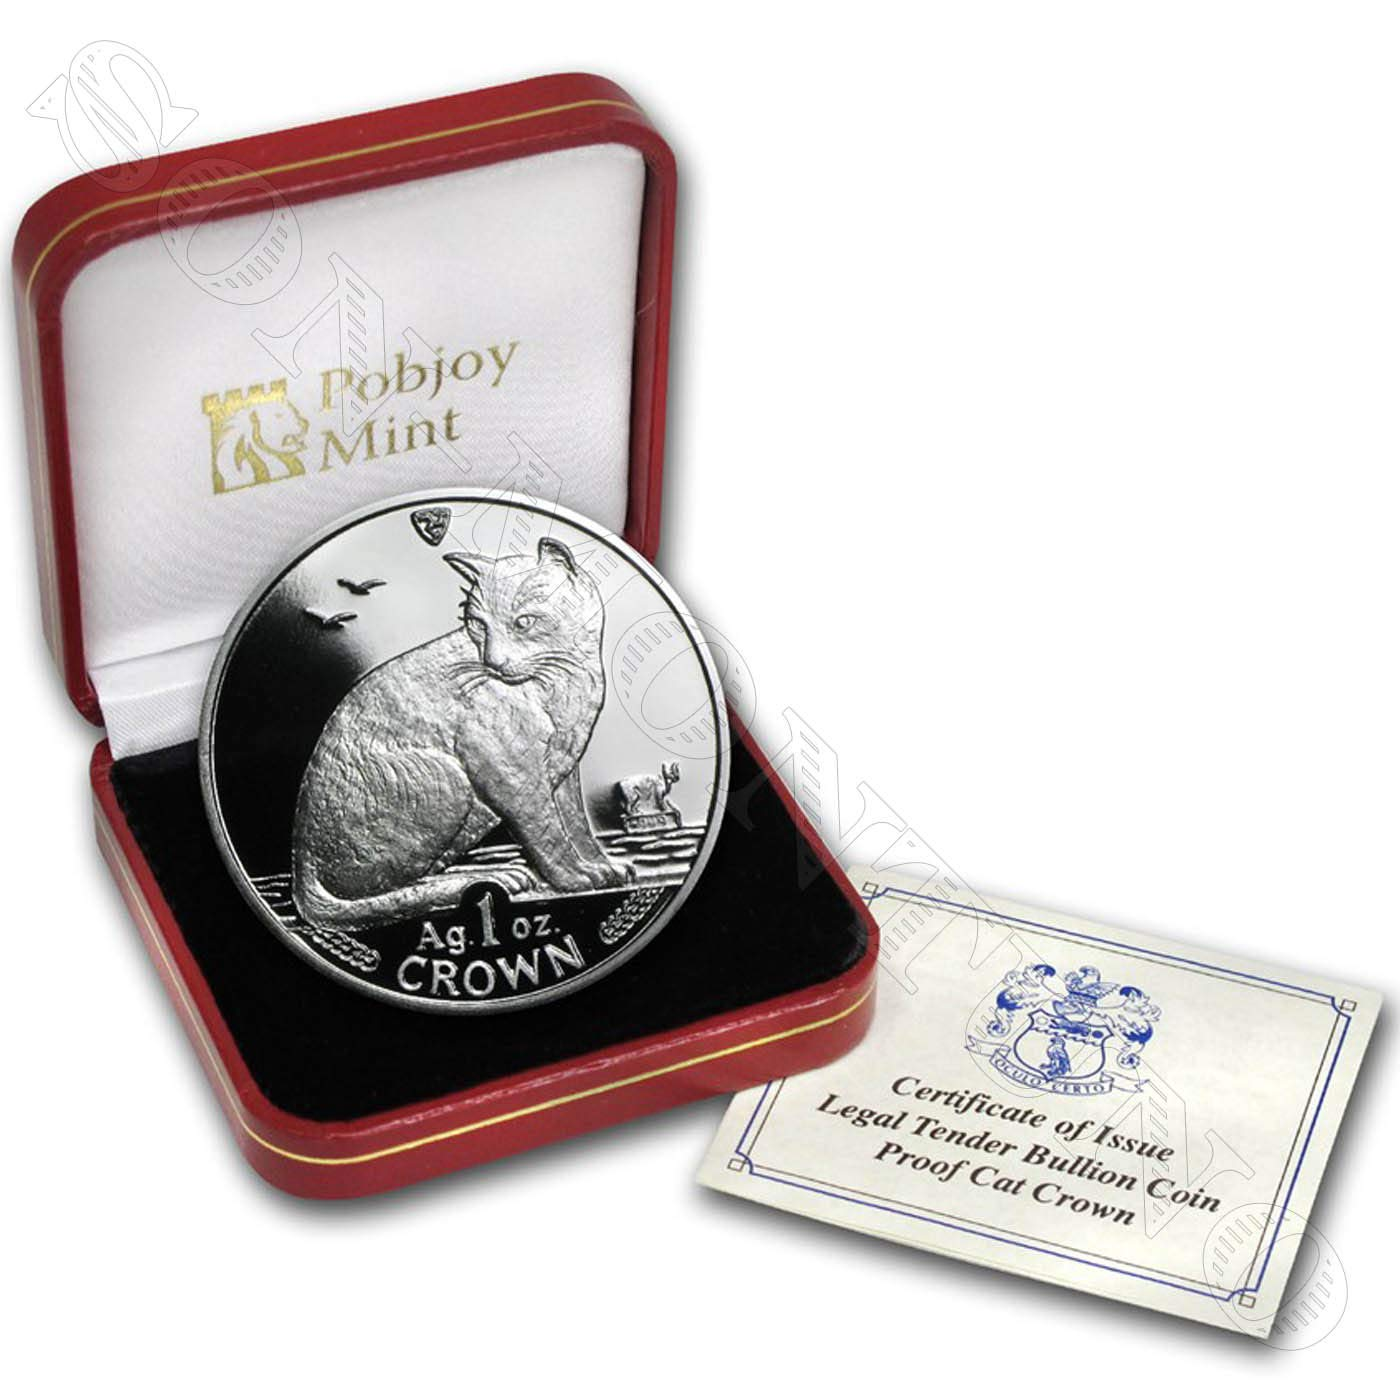 Brand New from the Mint in Box with Certificate of Authenticity Isle of Man 1 Oz .999 Silver Proof Crown Coin 1990 NEW YORK ALLEY CAT COIN